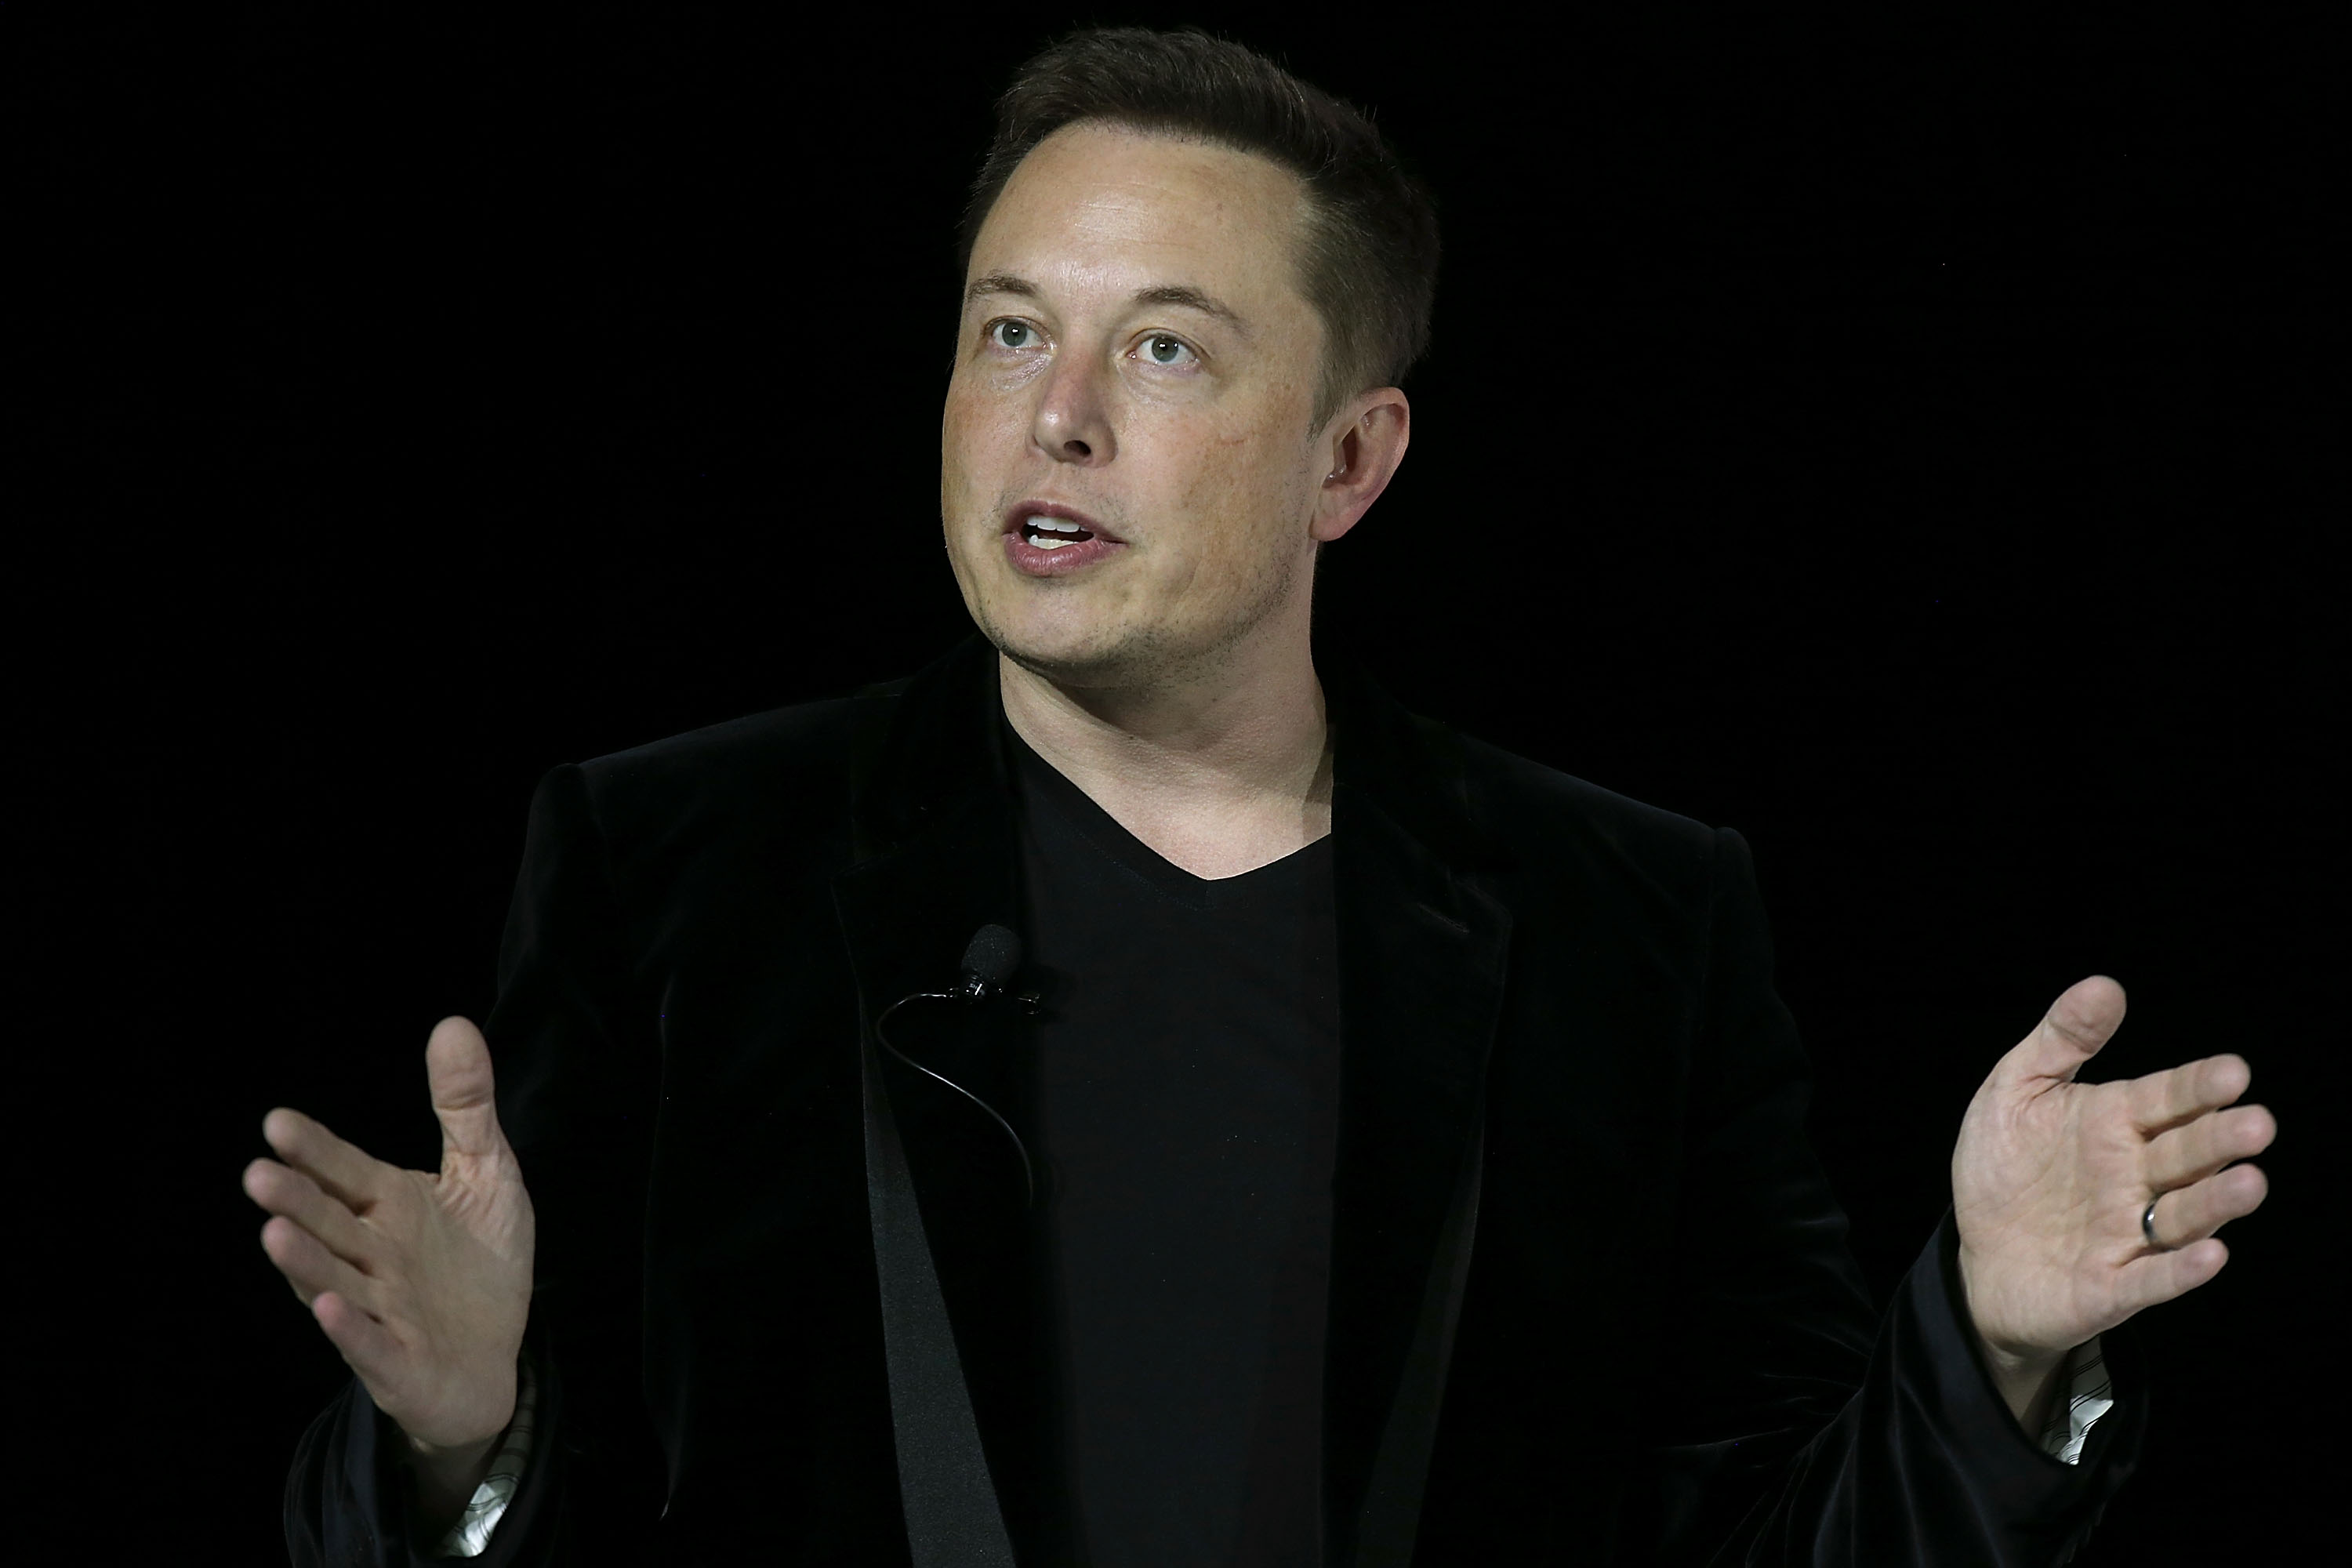 Tesla CEO Elon Musk speaks during an event to launch the new Tesla Model X Crossover SUV on September 29, 2015 in Fremont, California. After several production delays, Elon Musk officially launched the much anticipated Tesla Model X Crossover SUV. The